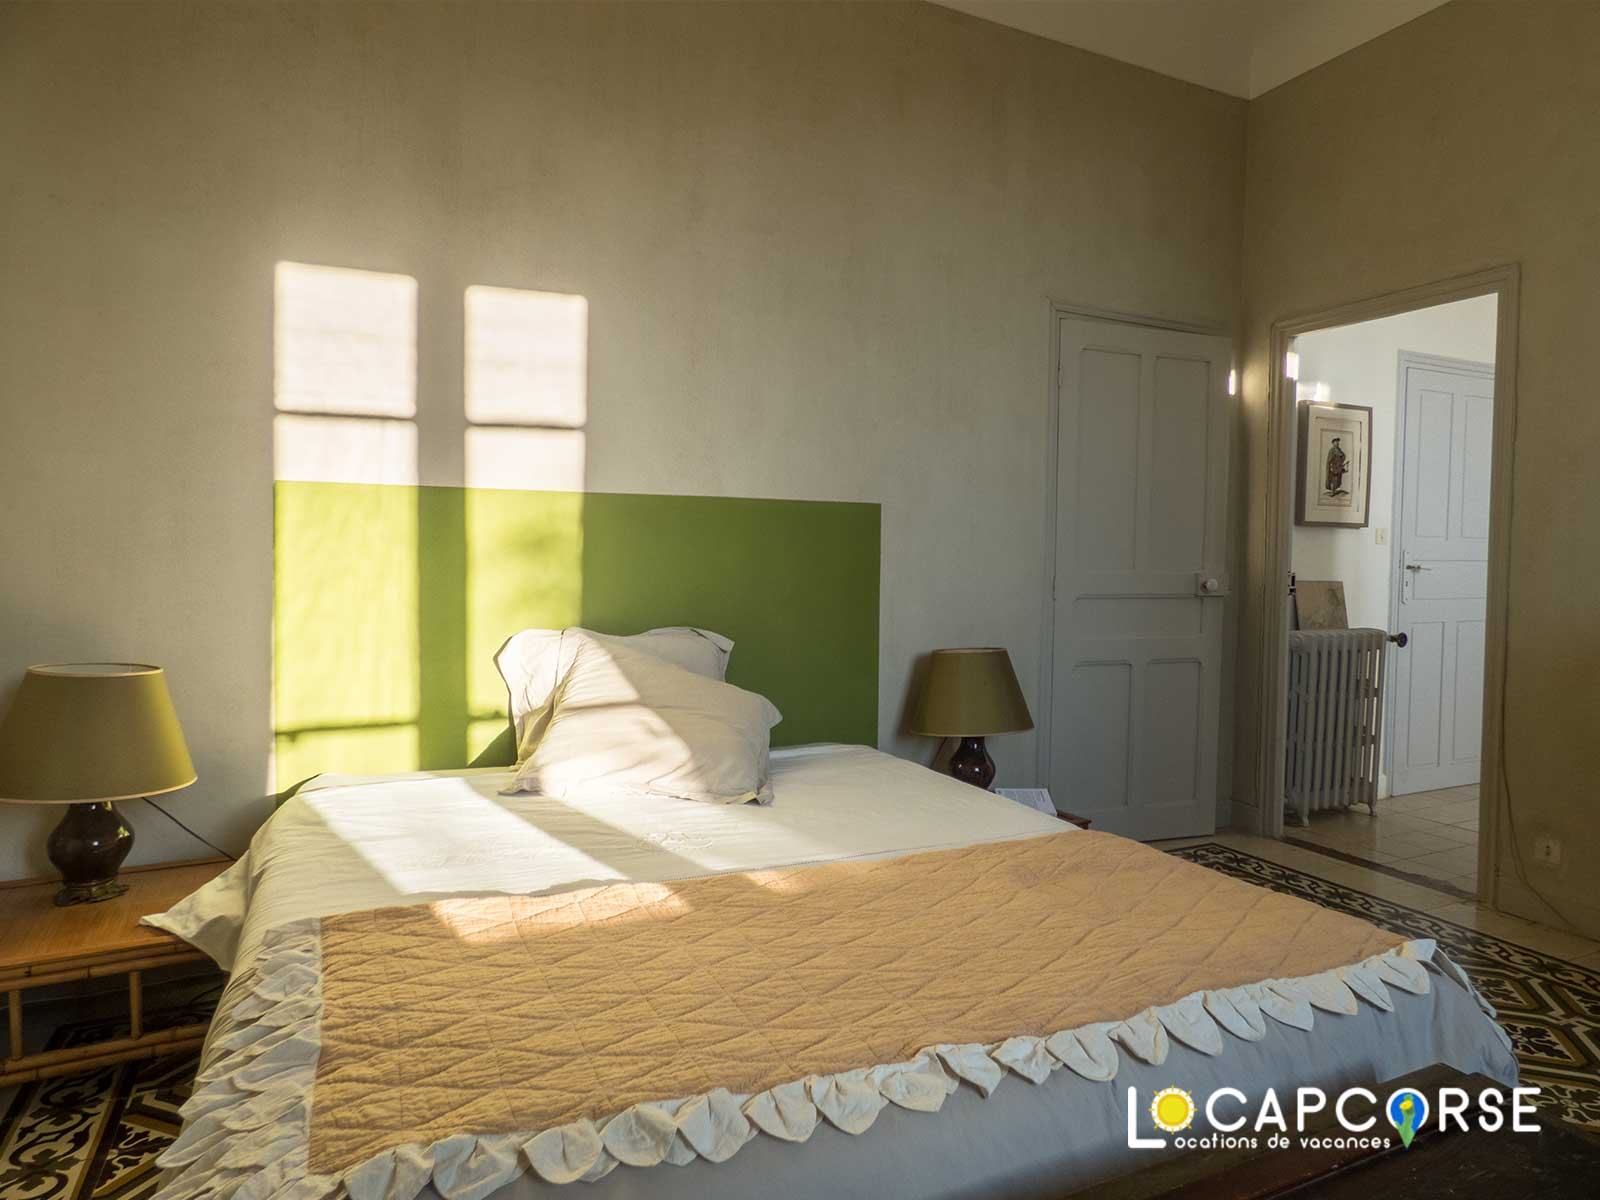 Locations Cap Corse -  bright bedroom - on the right, access to the bathroom